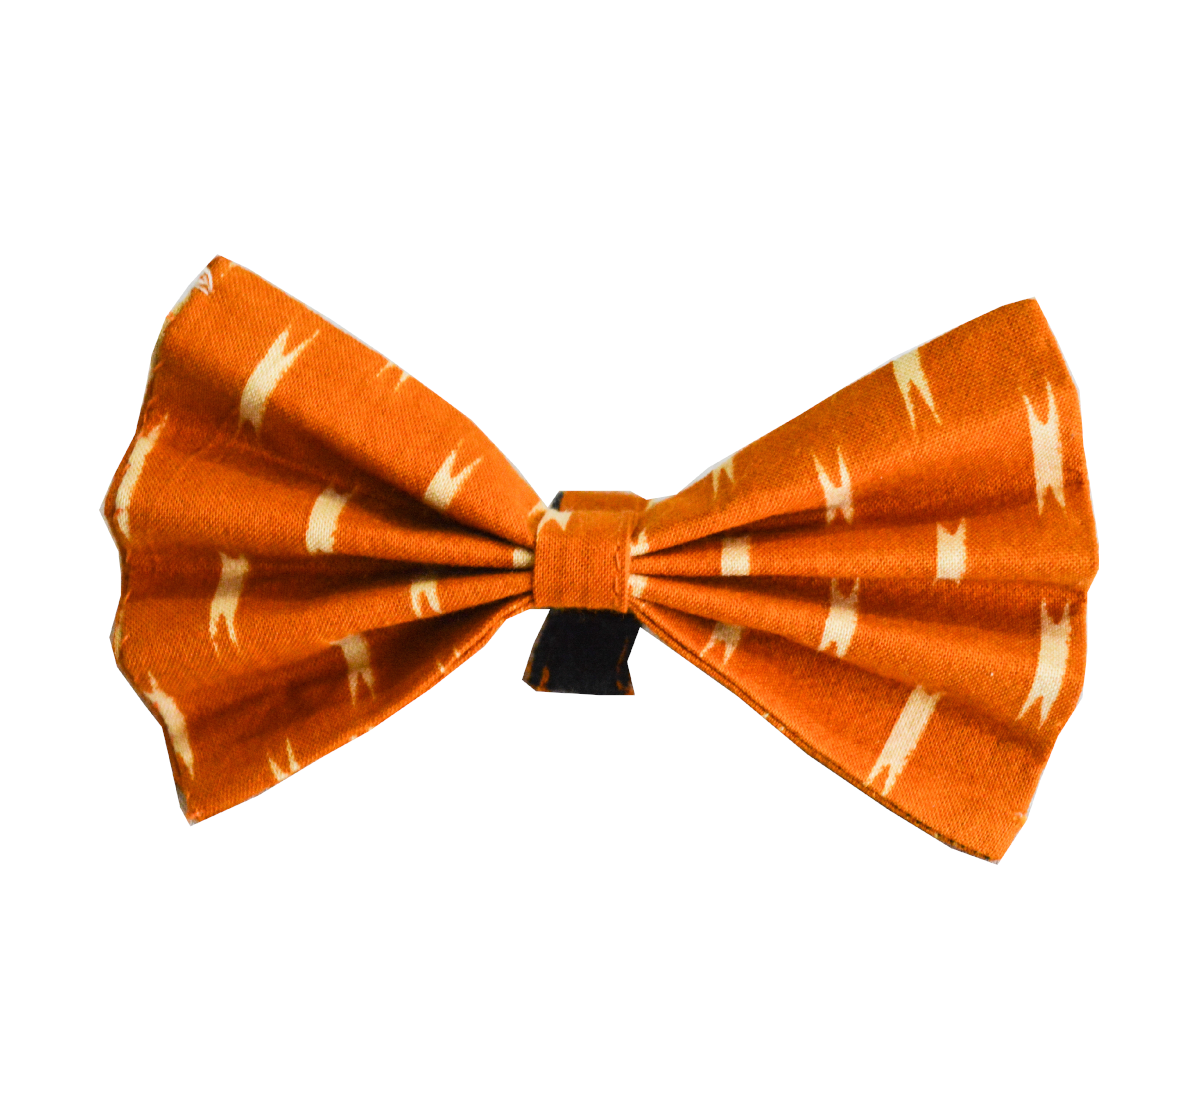 Paws A Little Yellow Ikat Adjustable Bow Tie